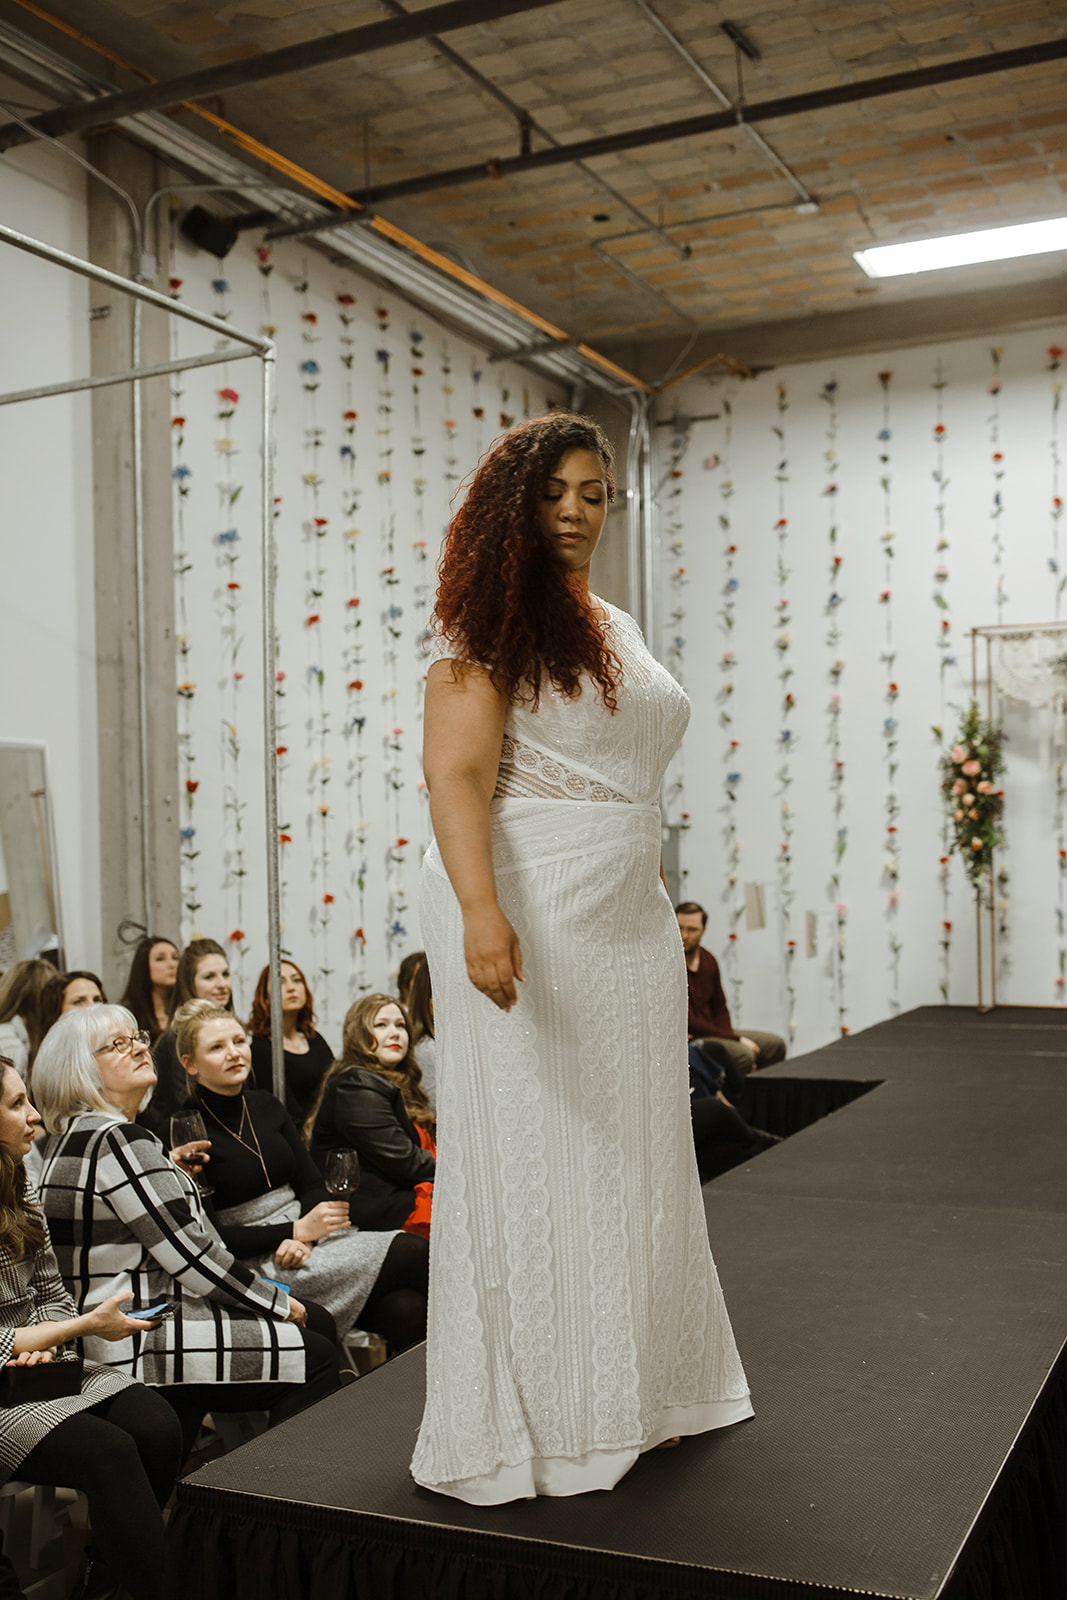 spokane wedding dress model pose runway fashion show